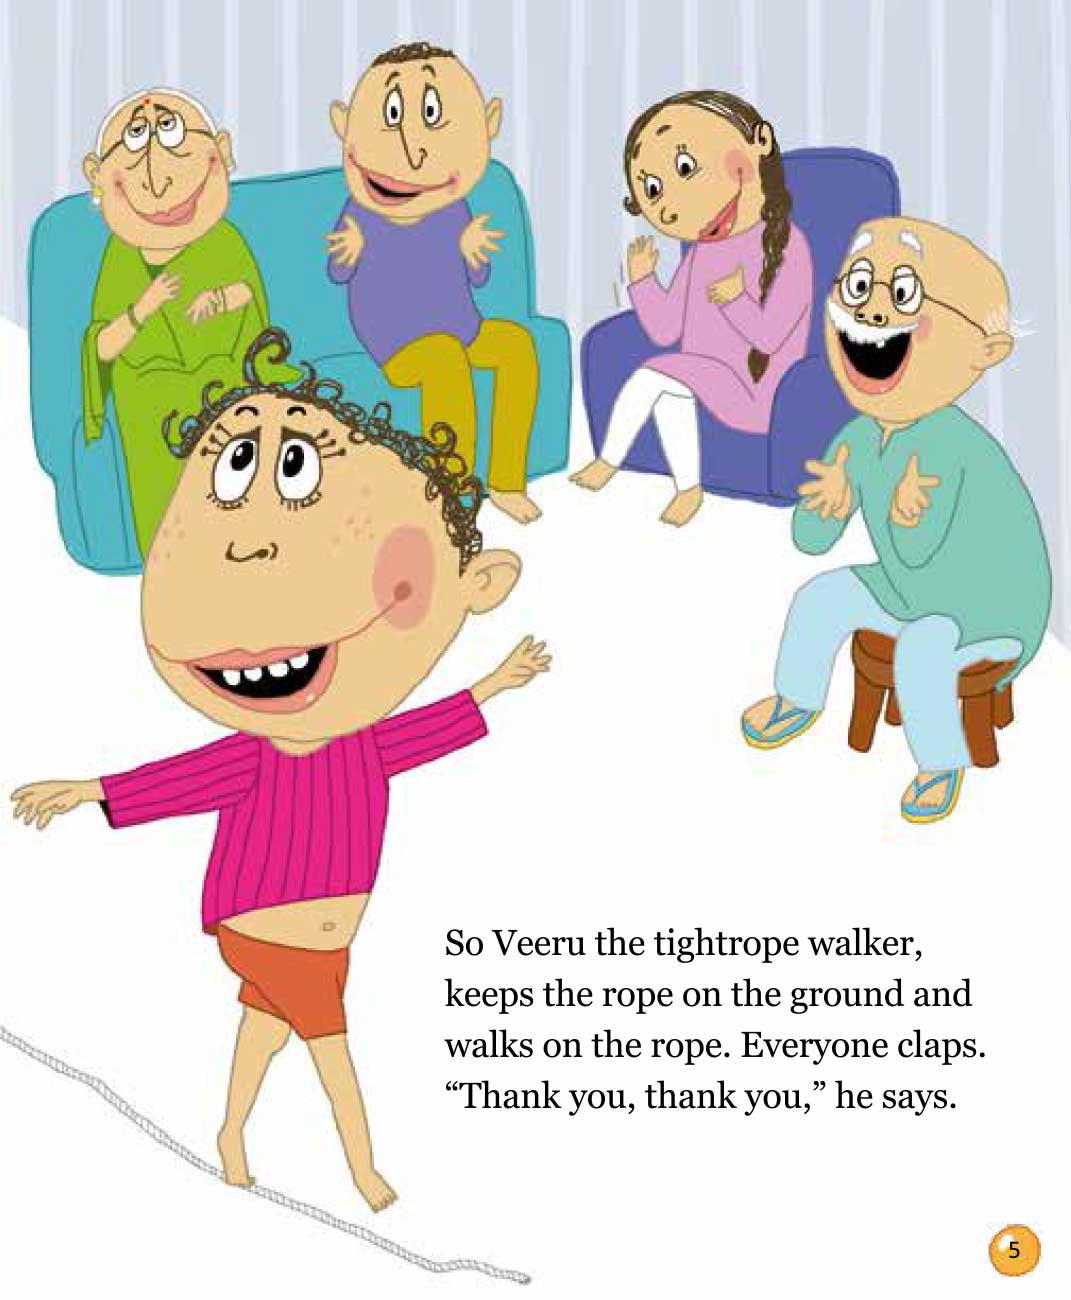 Bedtime stories 'Veeru Goes to the Circus' free picture book page 5